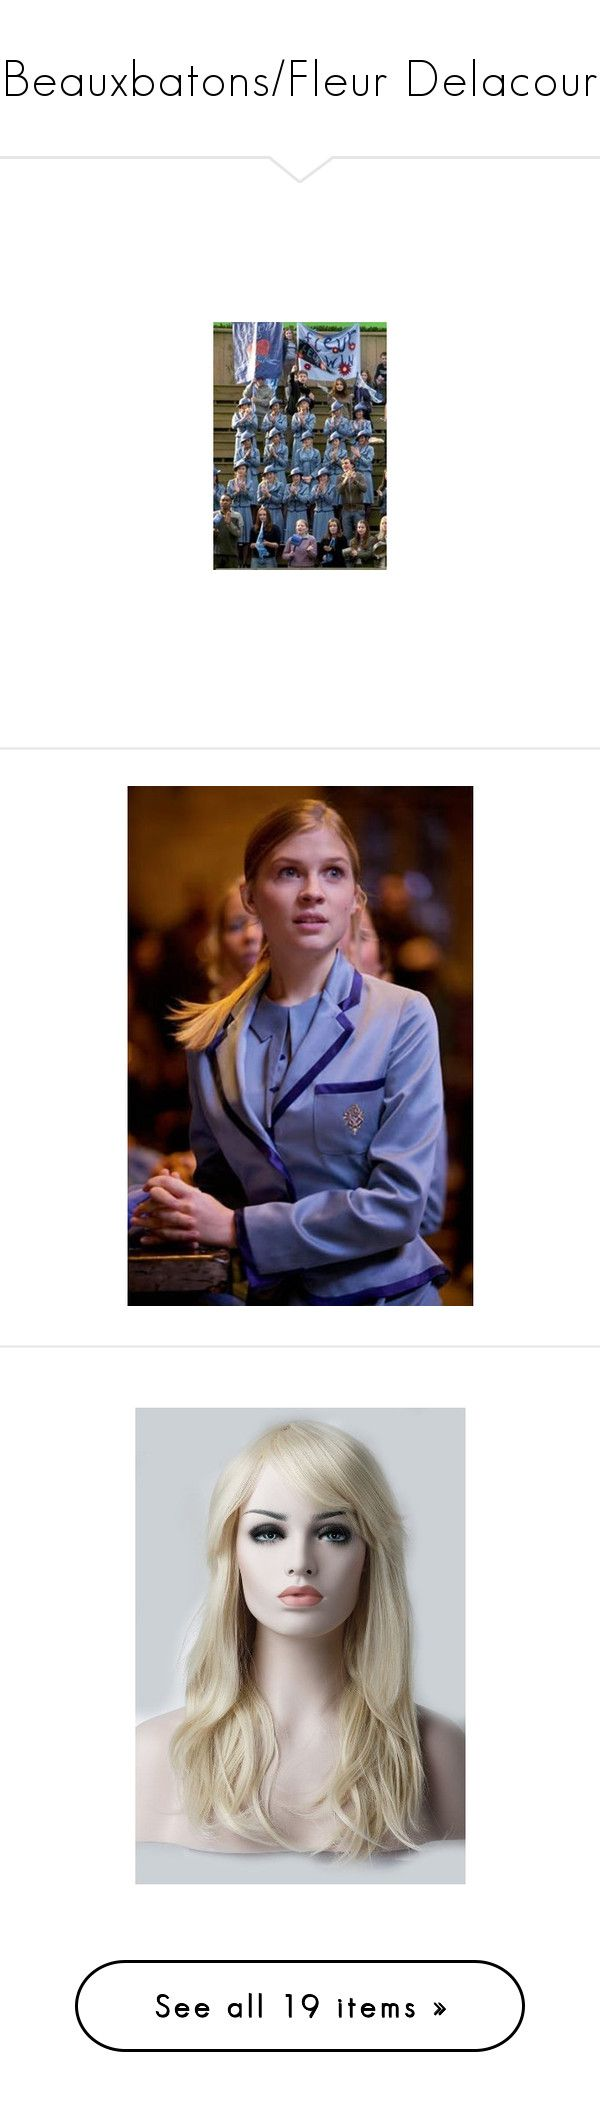 """""""Beauxbatons/Fleur Delacour"""" by lullabyyy ❤ liked on Polyvore featuring harry potter, beauxbatons, backgrounds, 4th year, hogwarts, people, beauty products, haircare, hair styling tools and hair"""